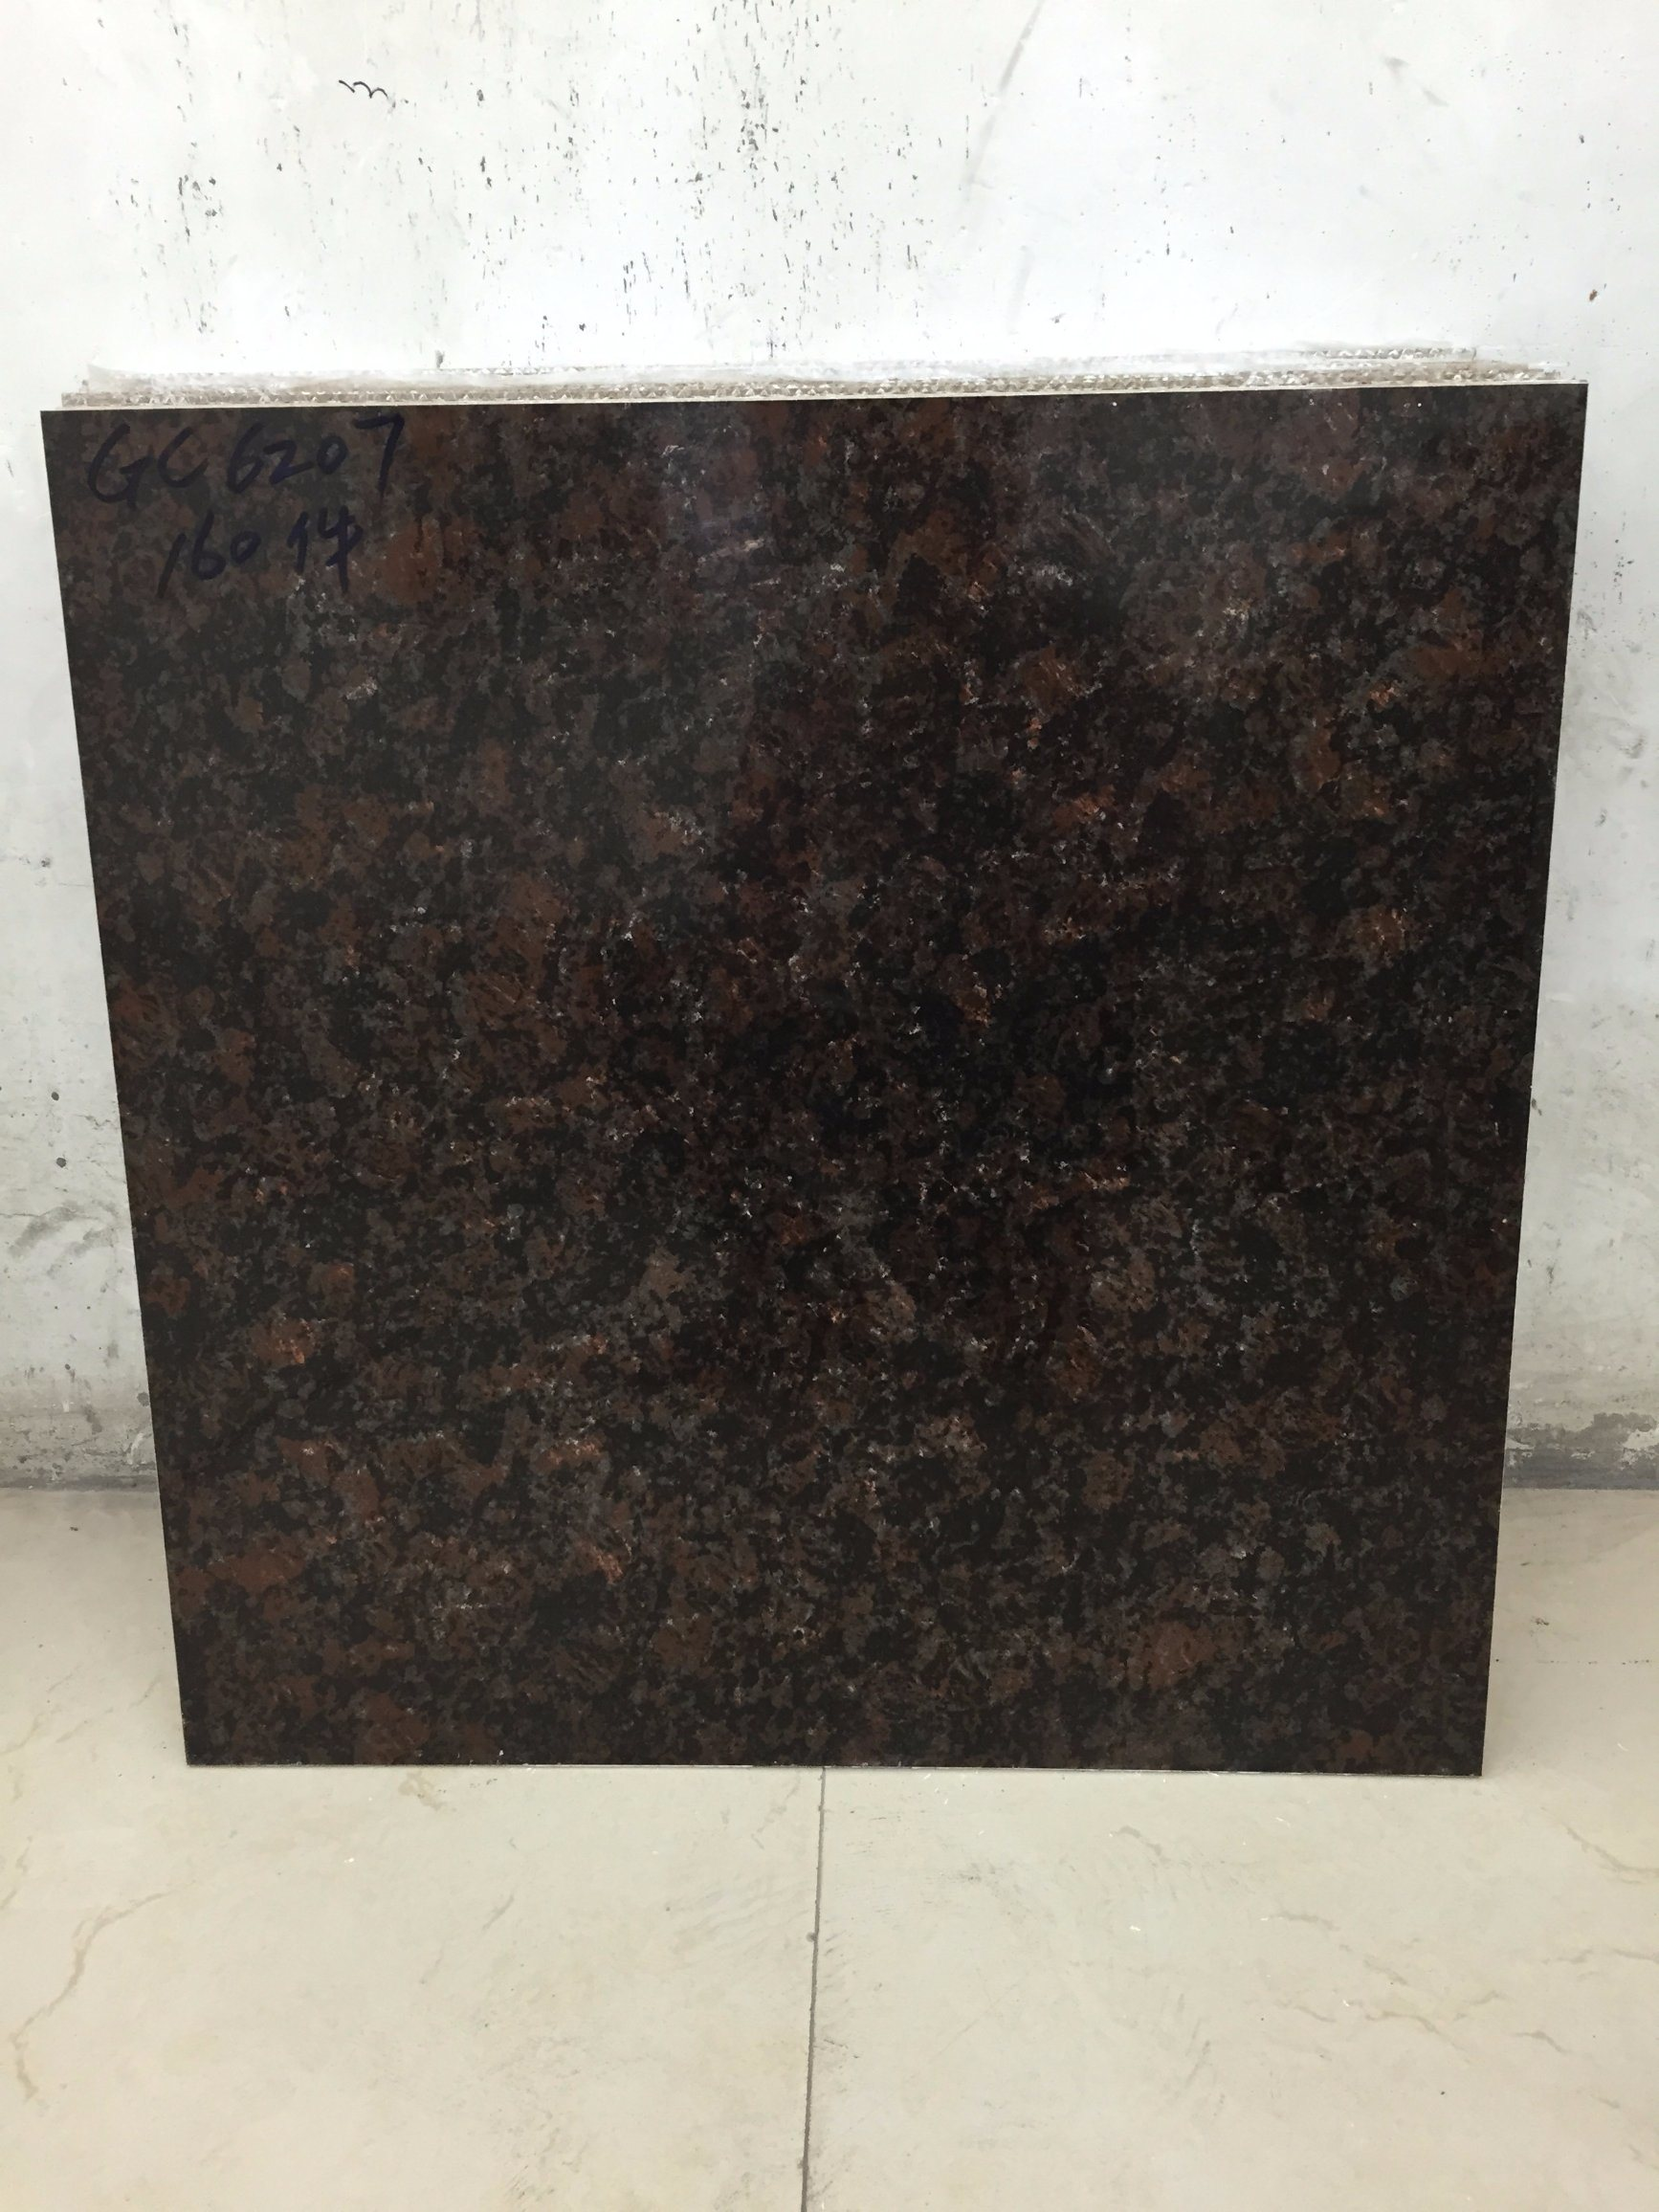 China 600x600mm black marble look porcelain floor tiles photos 600x600mm black marble look porcelain floor tiles dailygadgetfo Gallery